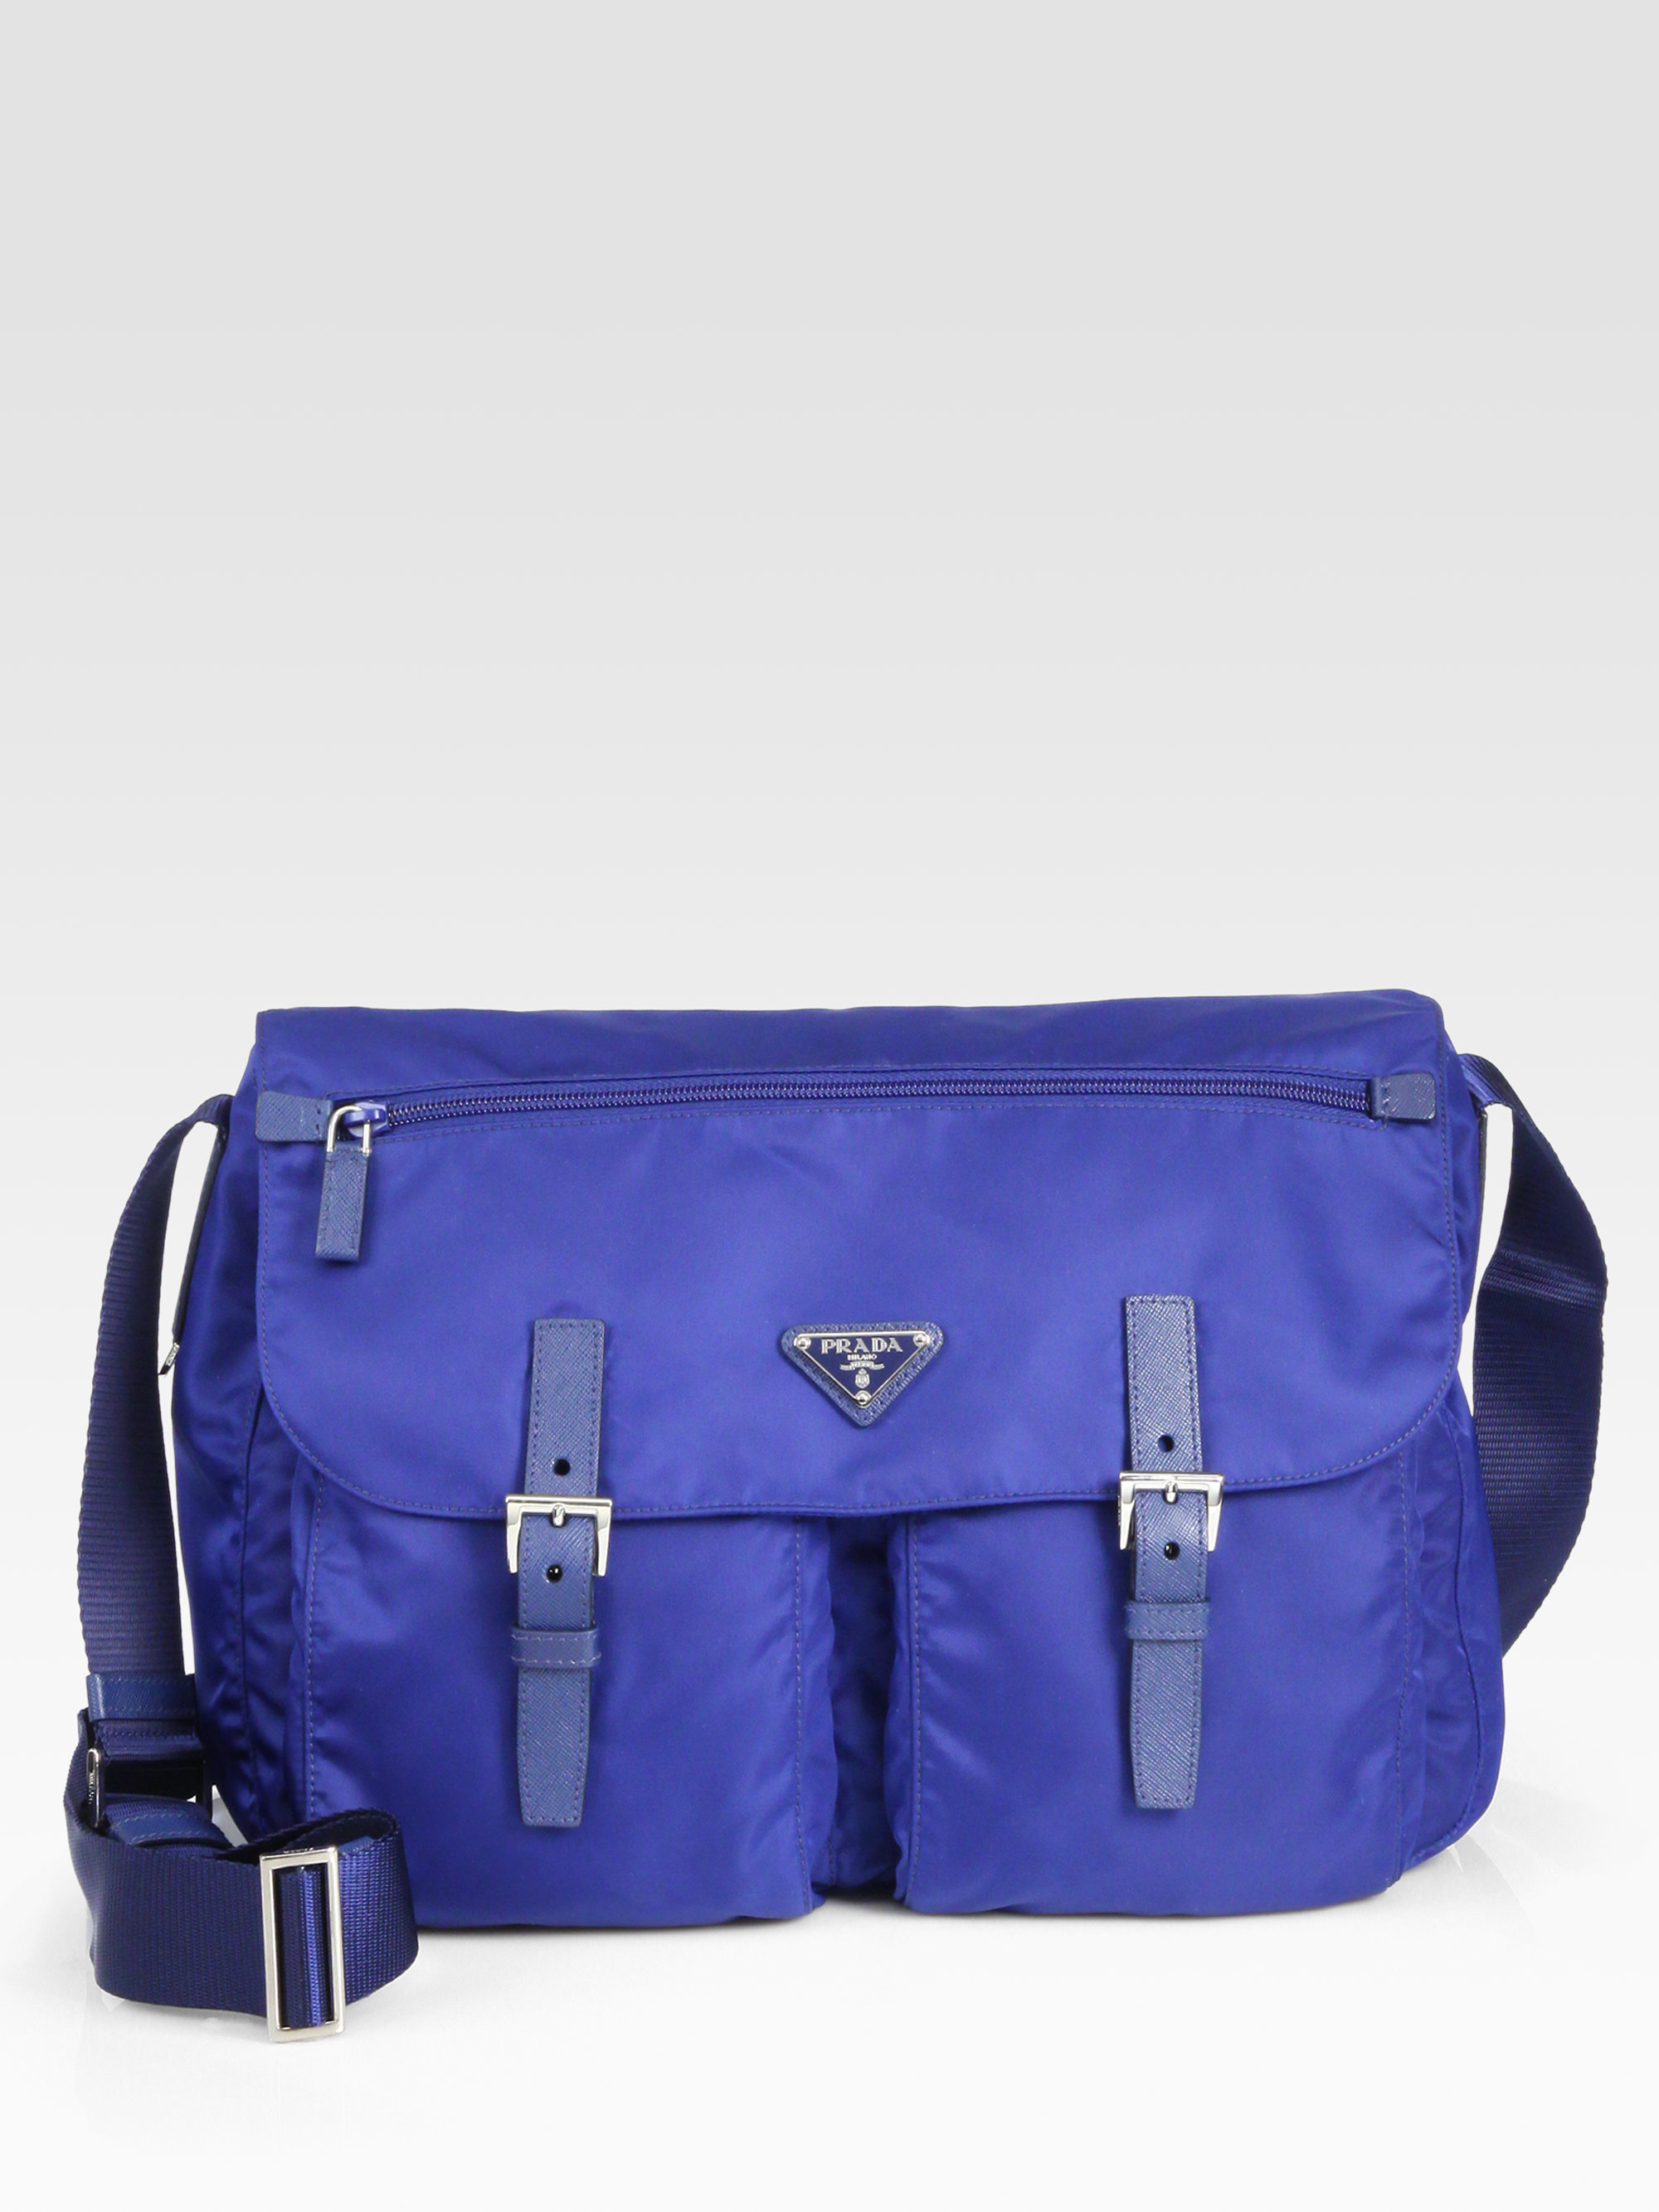 593230c60575 Prada Vela Bag Blue | Stanford Center for Opportunity Policy in ...